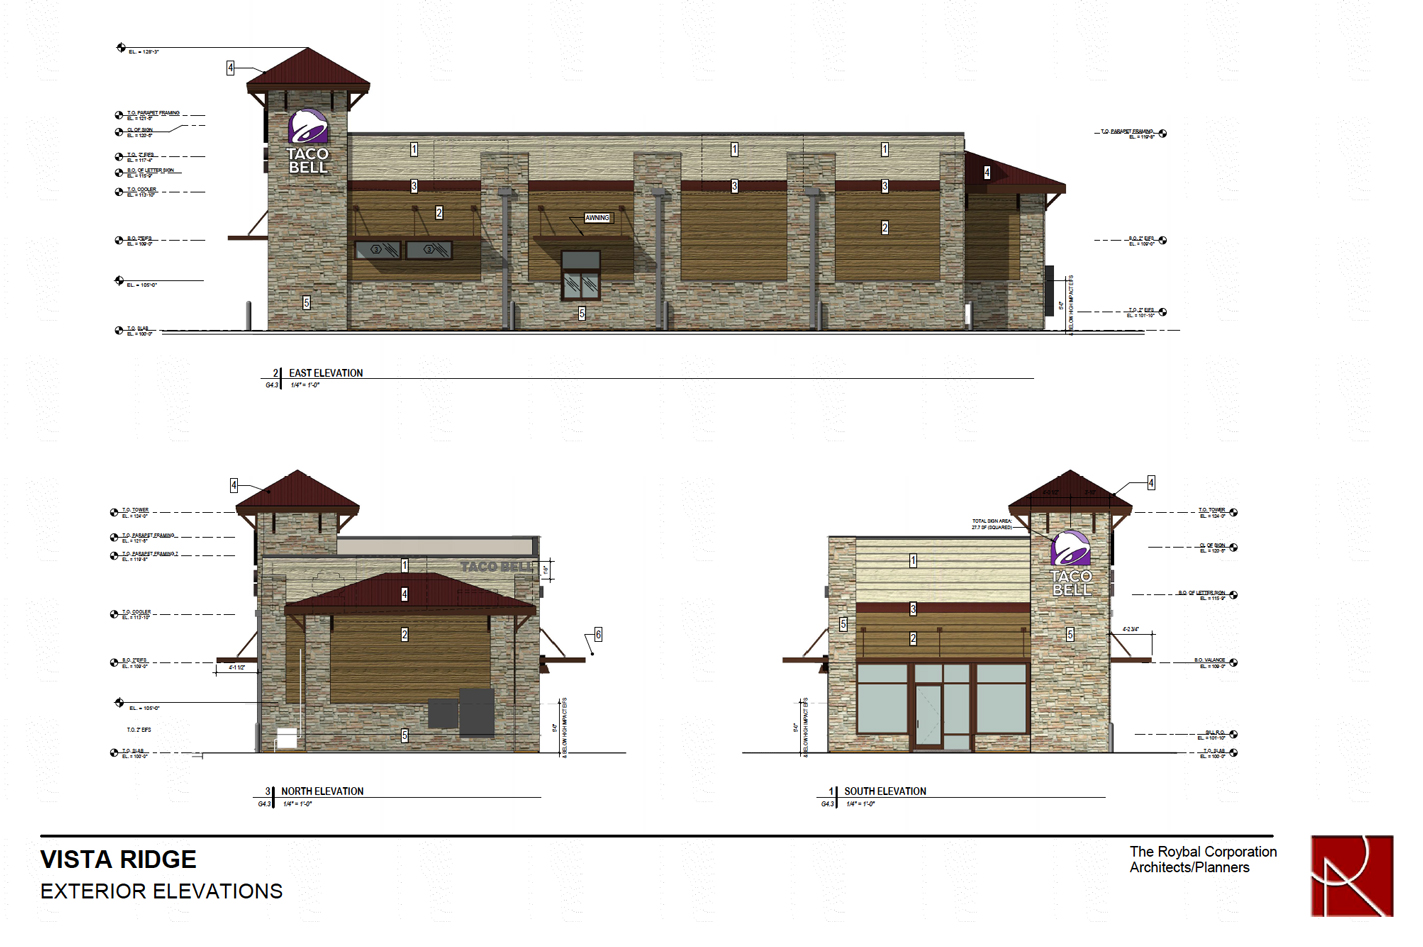 Taco Bell Vista Ridge Elevations